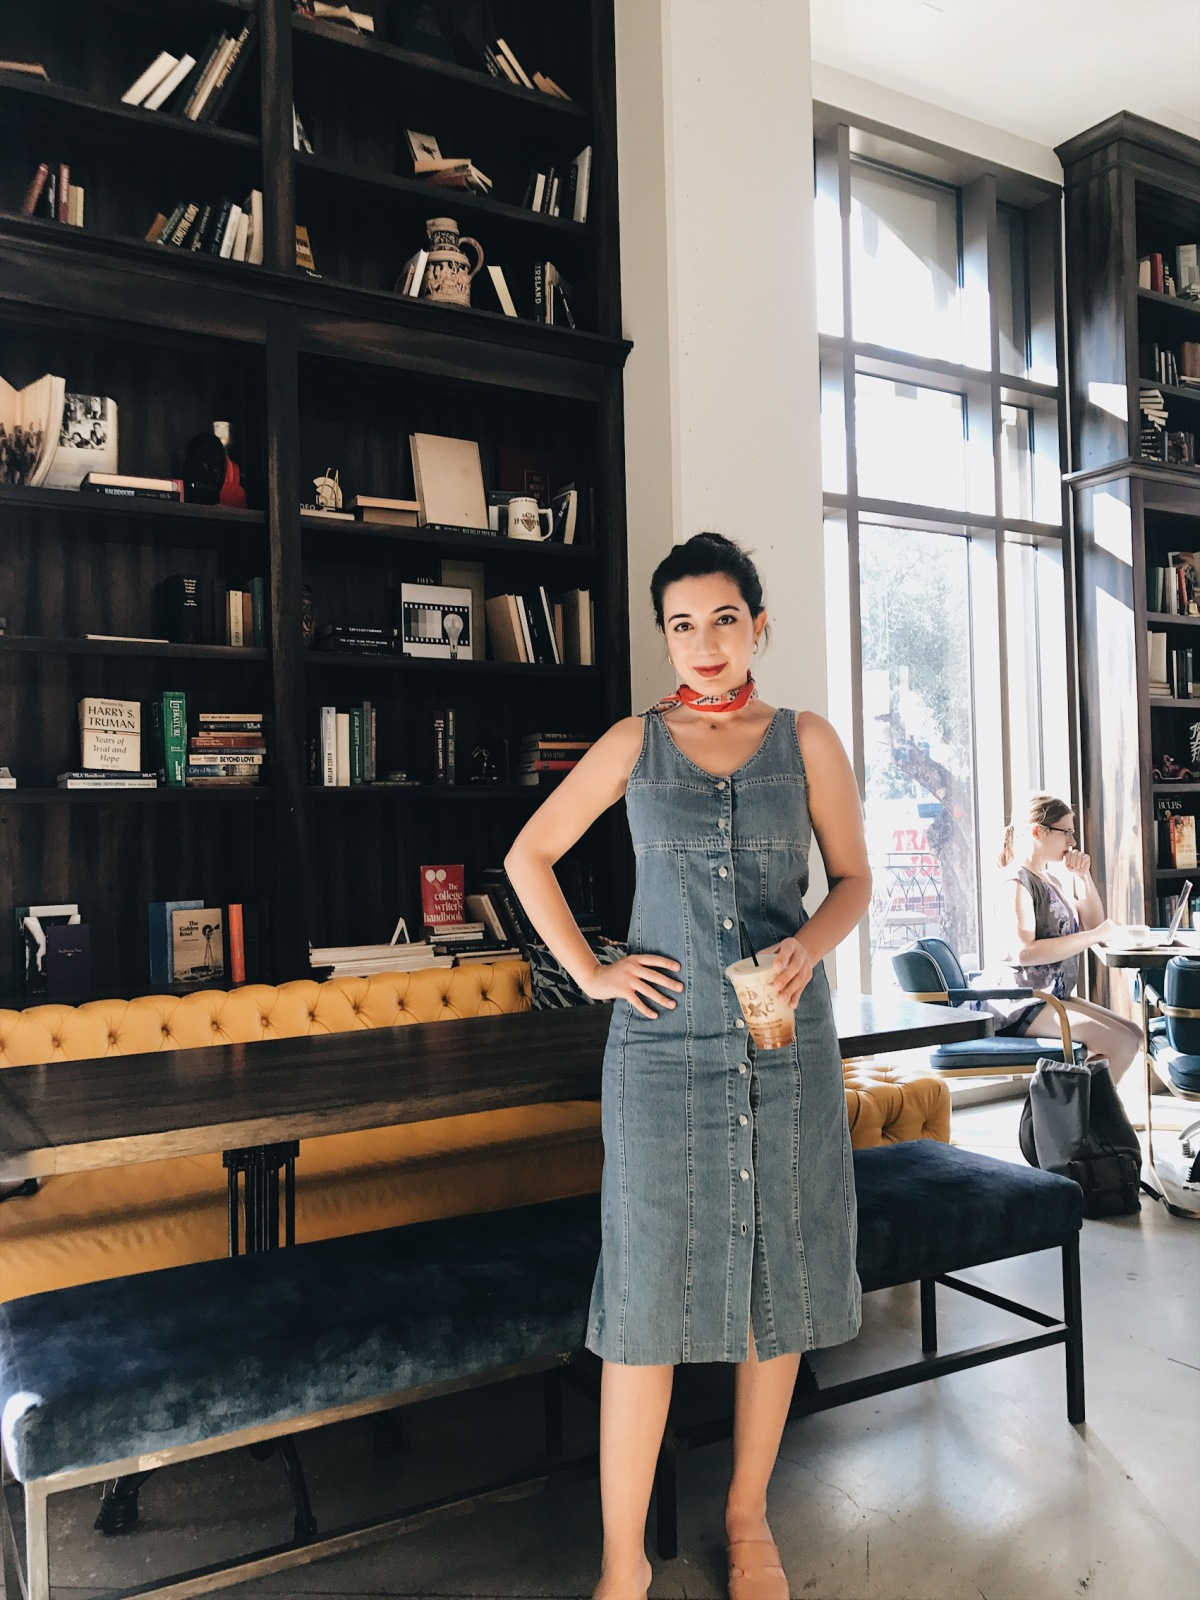 The Butcher The Baker The Cappucino Maker, BBCM Cafe USC, bookish, Los Angeles books, Zara, culottes, black tank top, vintage fashion, fashion blogger, style blogger, book blogger